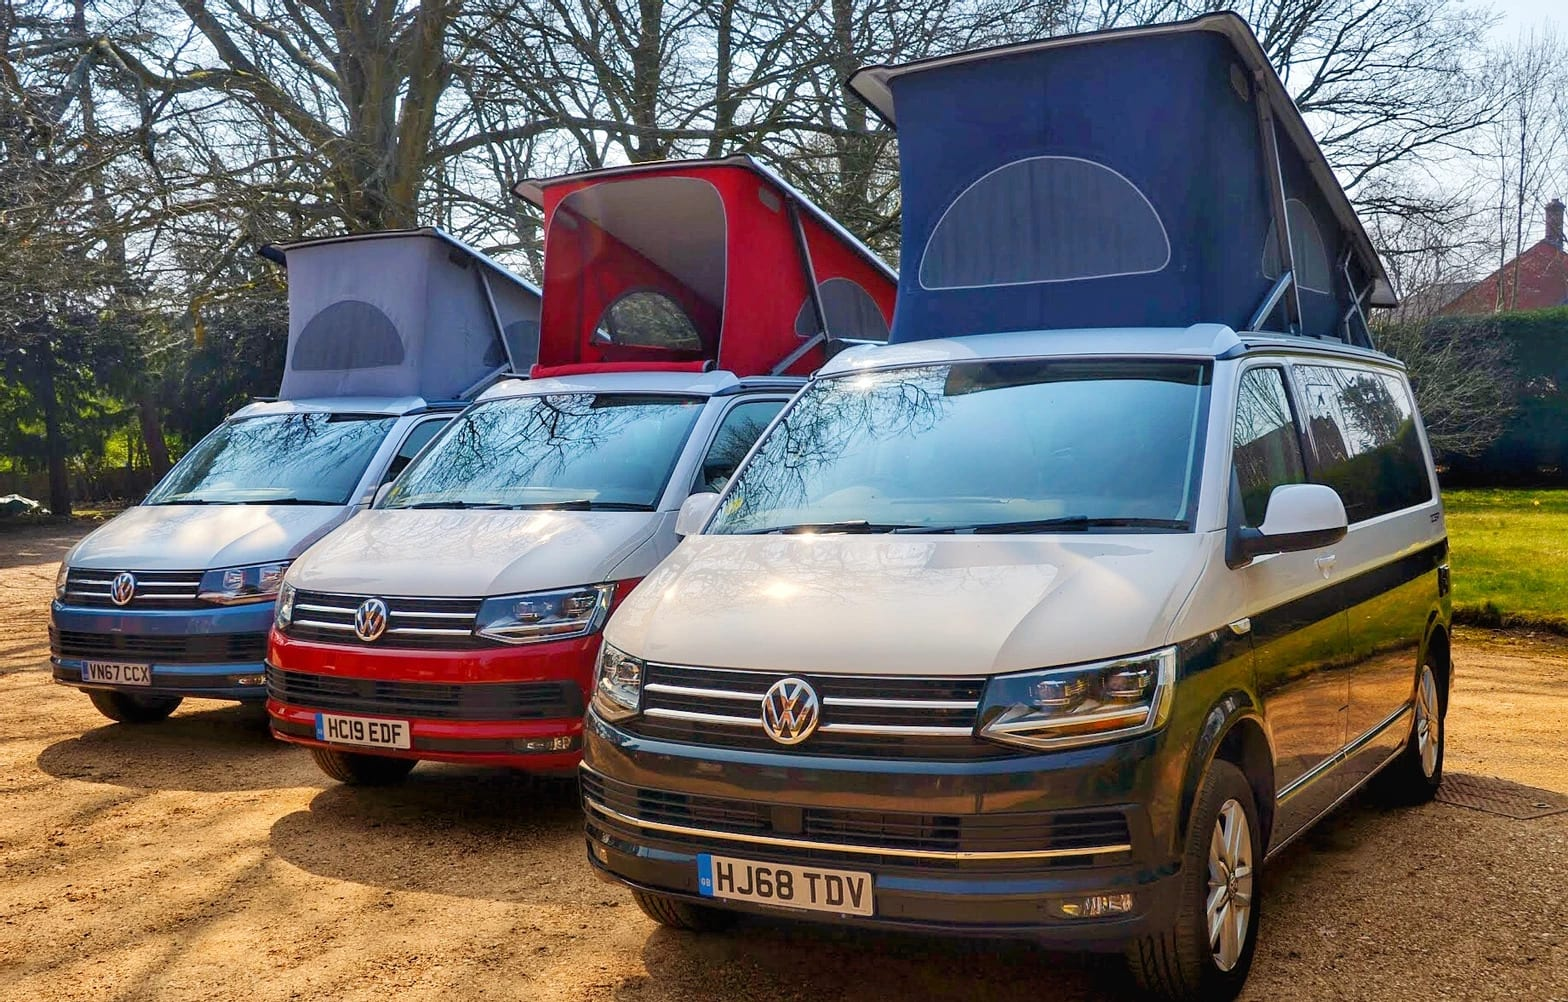 A row of 3 different VW campervans available for hire from Southampton campers.